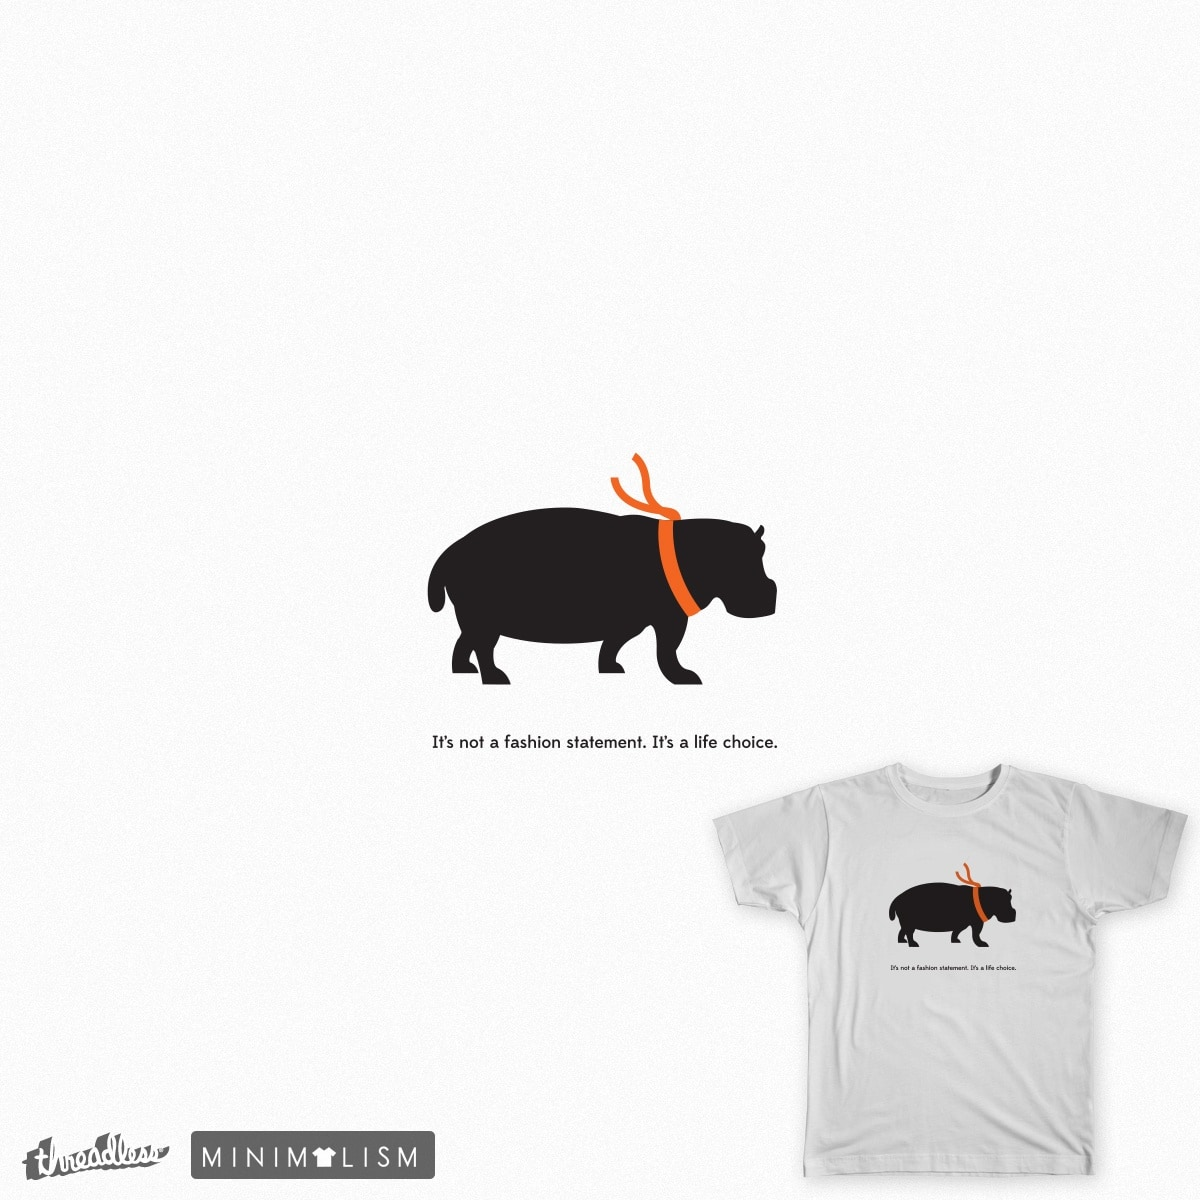 Hippo Statement by themysterydpns on Threadless